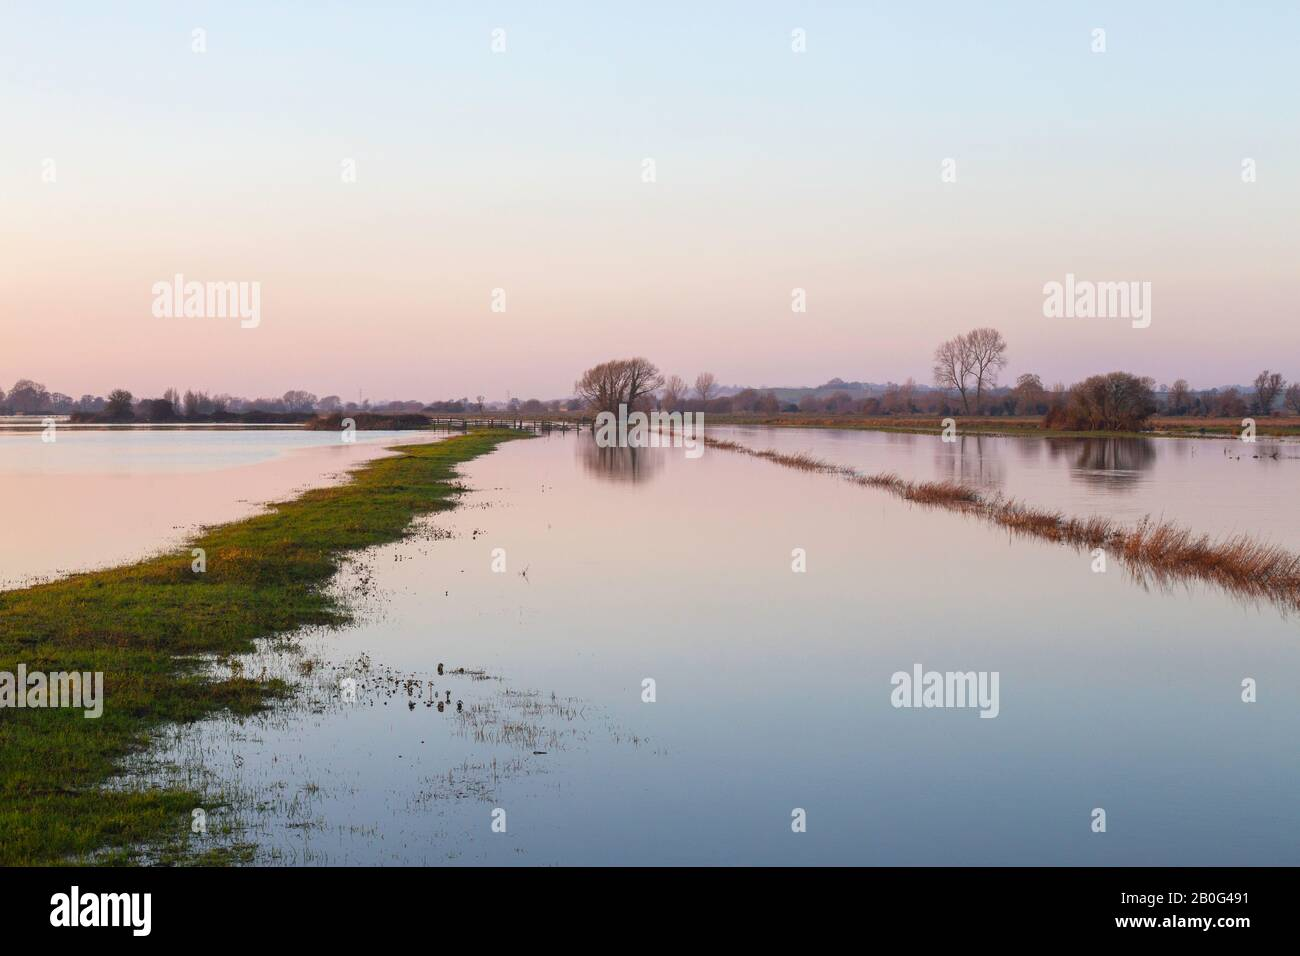 Flooded fields on the Somerset Levels, December 2019. Stock Photo